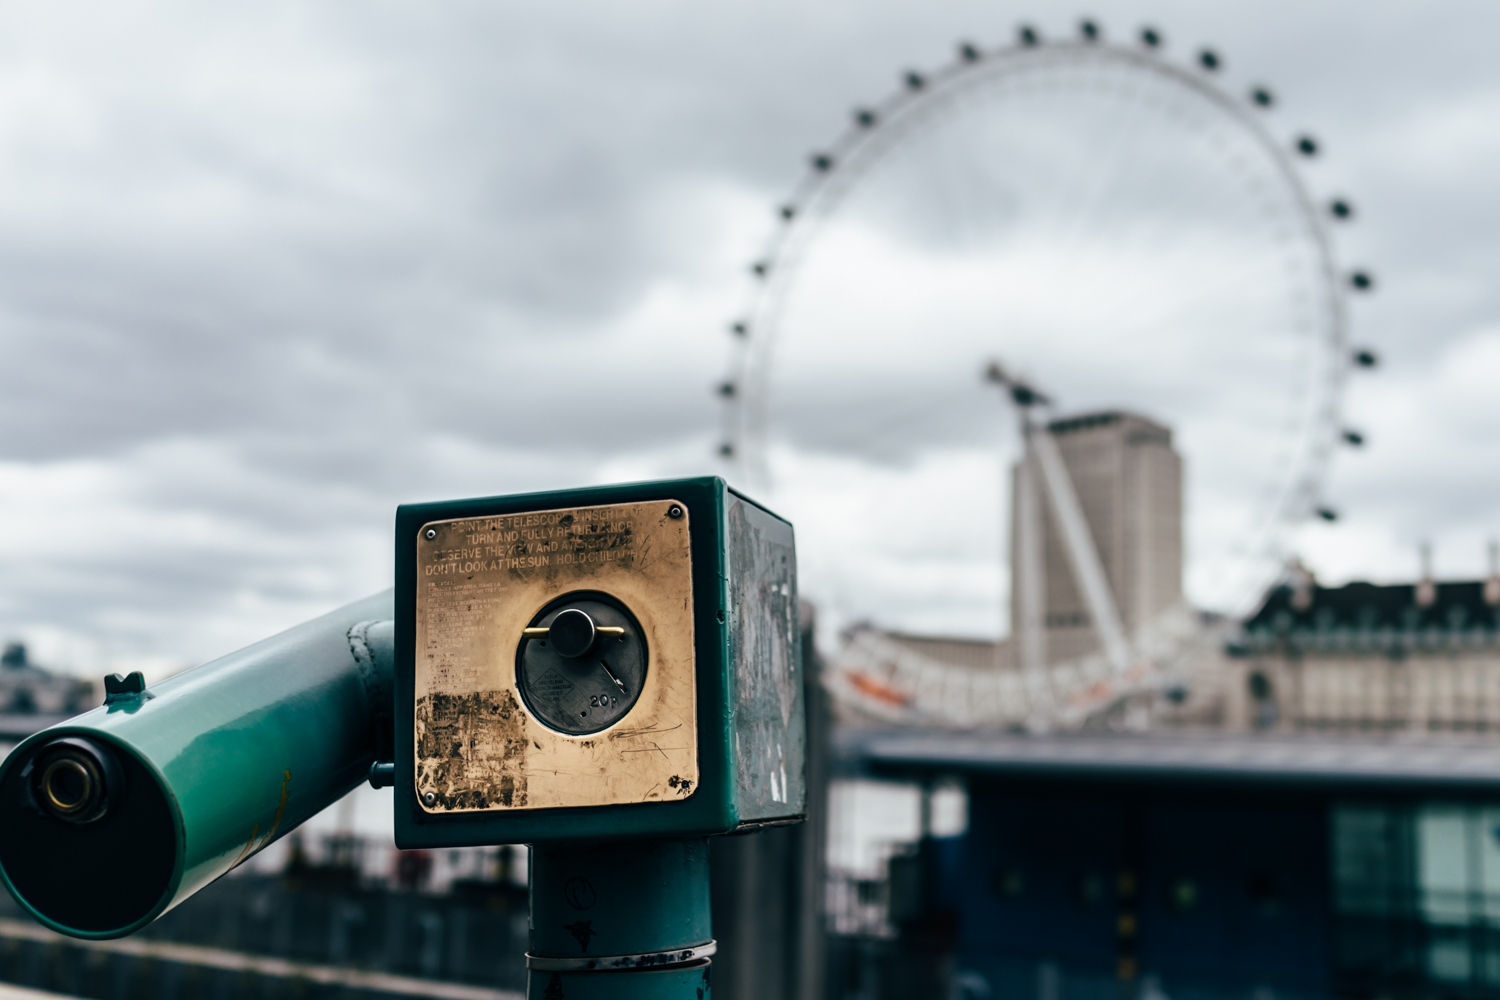 The London Eye, as seen from Embankment.